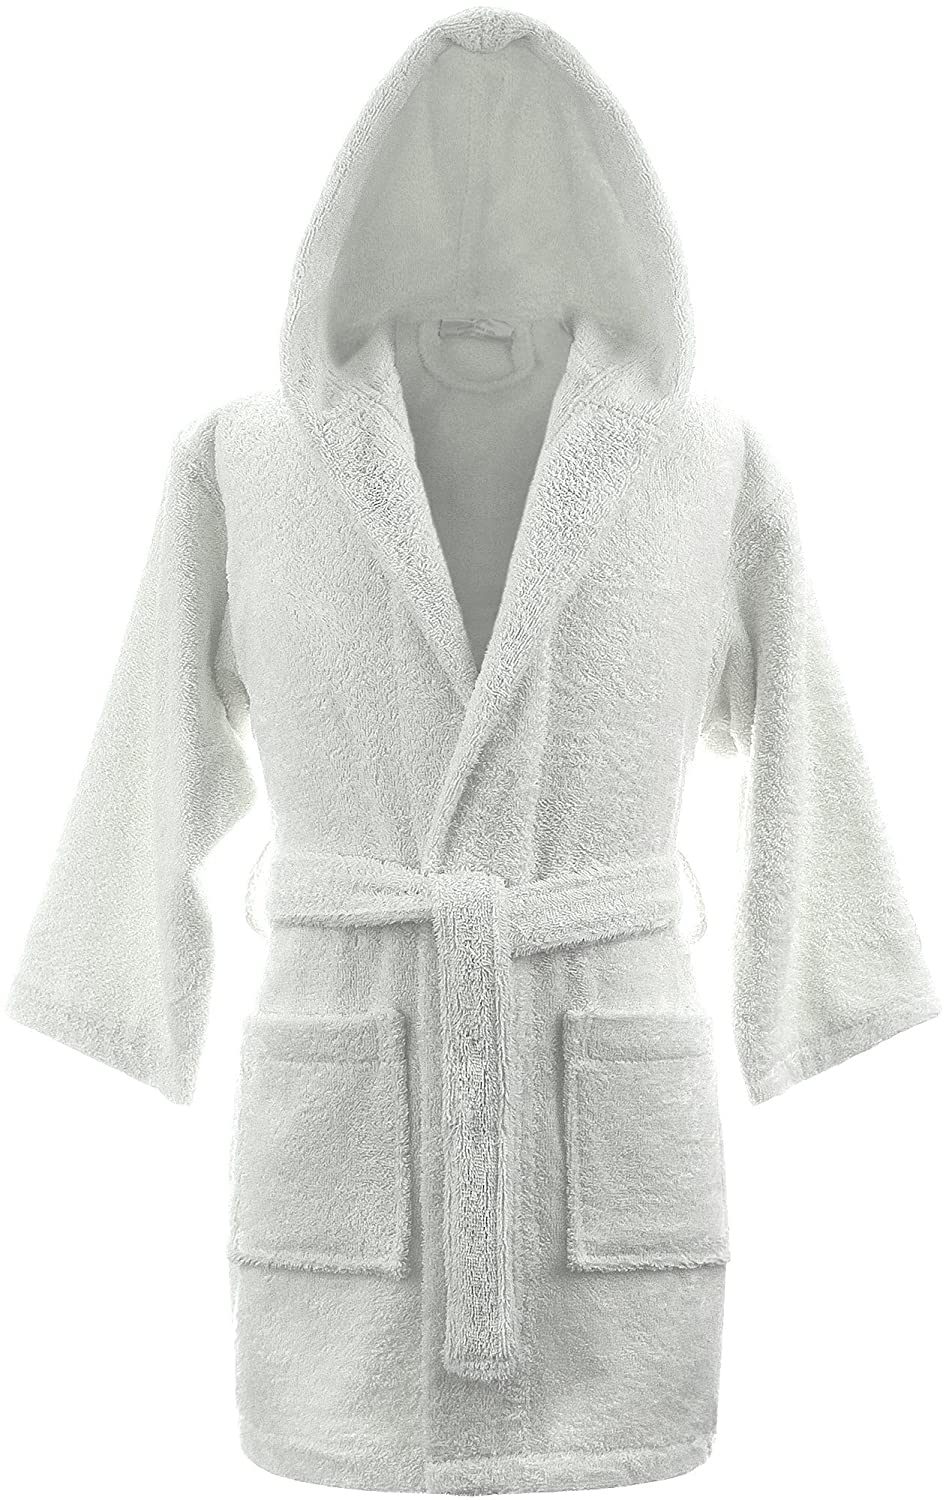 Kids Girls Boys Hooded Bathrobes Dressing Gowns - 100% Egyptian Cotton Luxury and Super Soft Unisex - Age 8 - 14 by A & B Traders ®